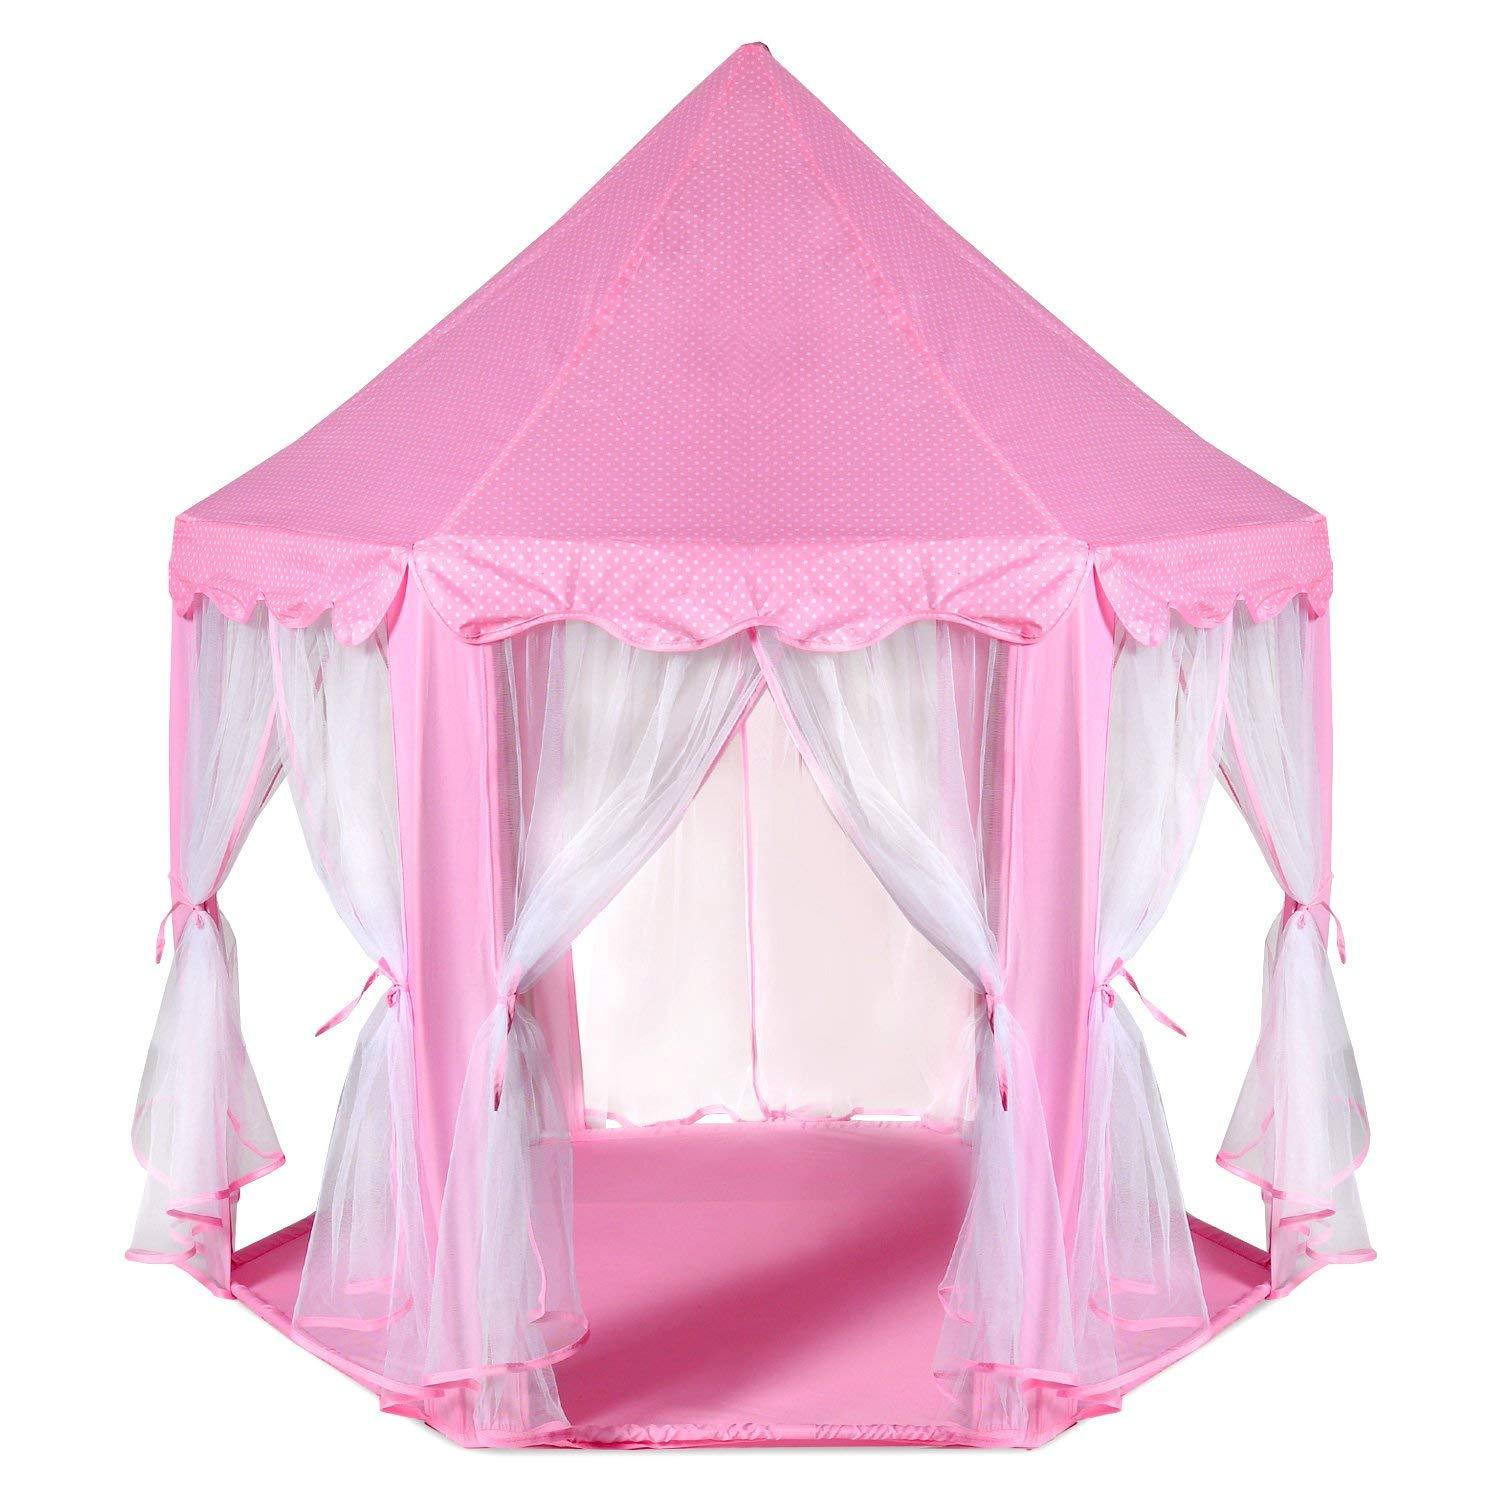 2cb755d55b2 Large Indoor and Outdoor Kids Play House Pink Hexagon Princess Castle Kids  Play Tent Child Play